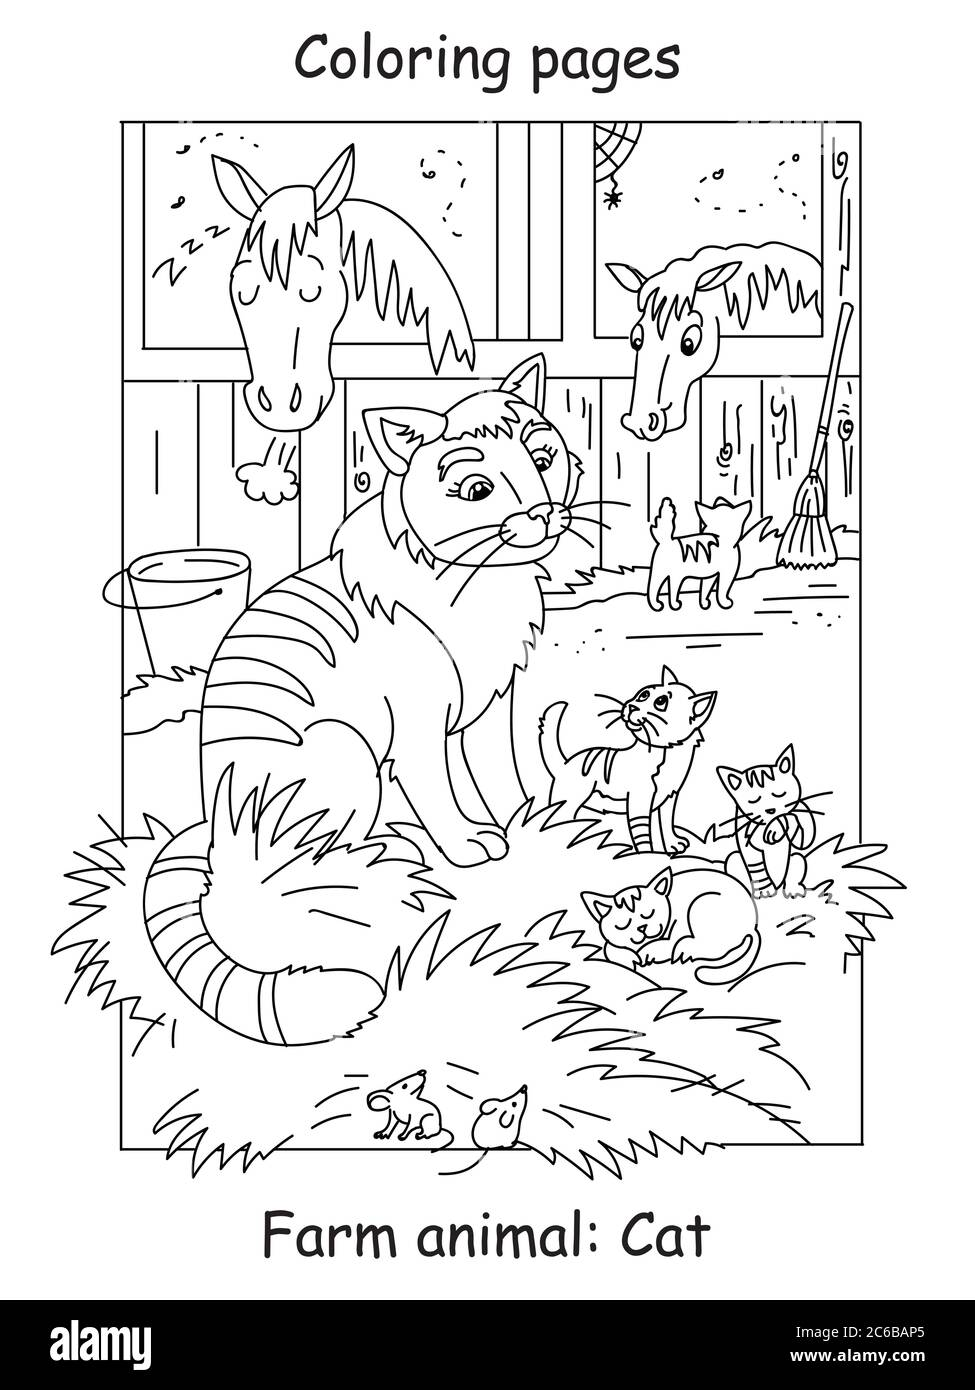 Vector Coloring Pages With Cute Cat And Little Kittens On The Farm Cartoon Contour Illustration Isolated On White Background Stock Illustration For Stock Vector Image Art Alamy